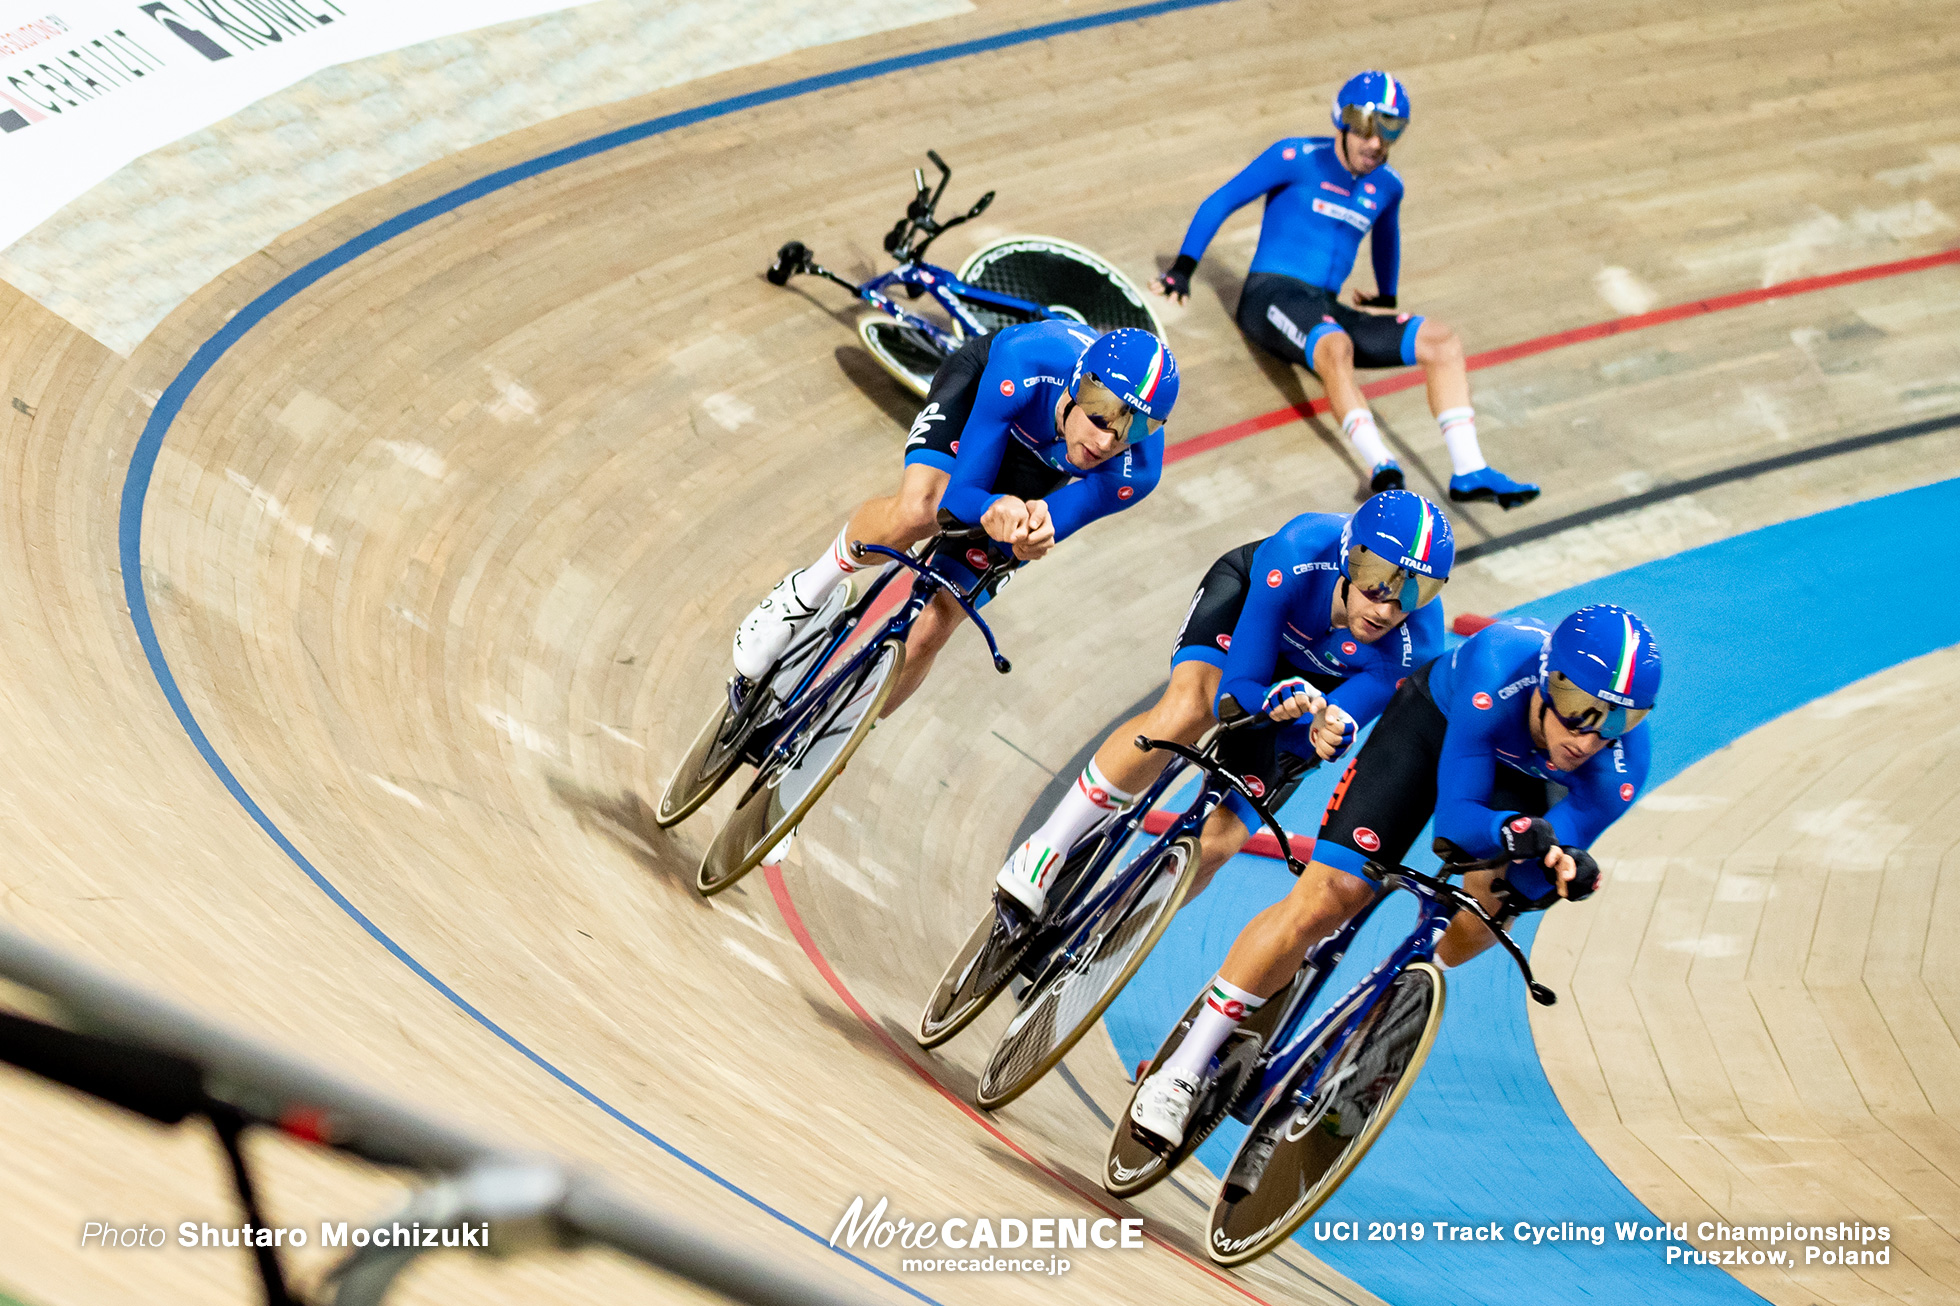 Men's Team Pursuit / 2019 Track Cycling World Championships Pruszków, Poland